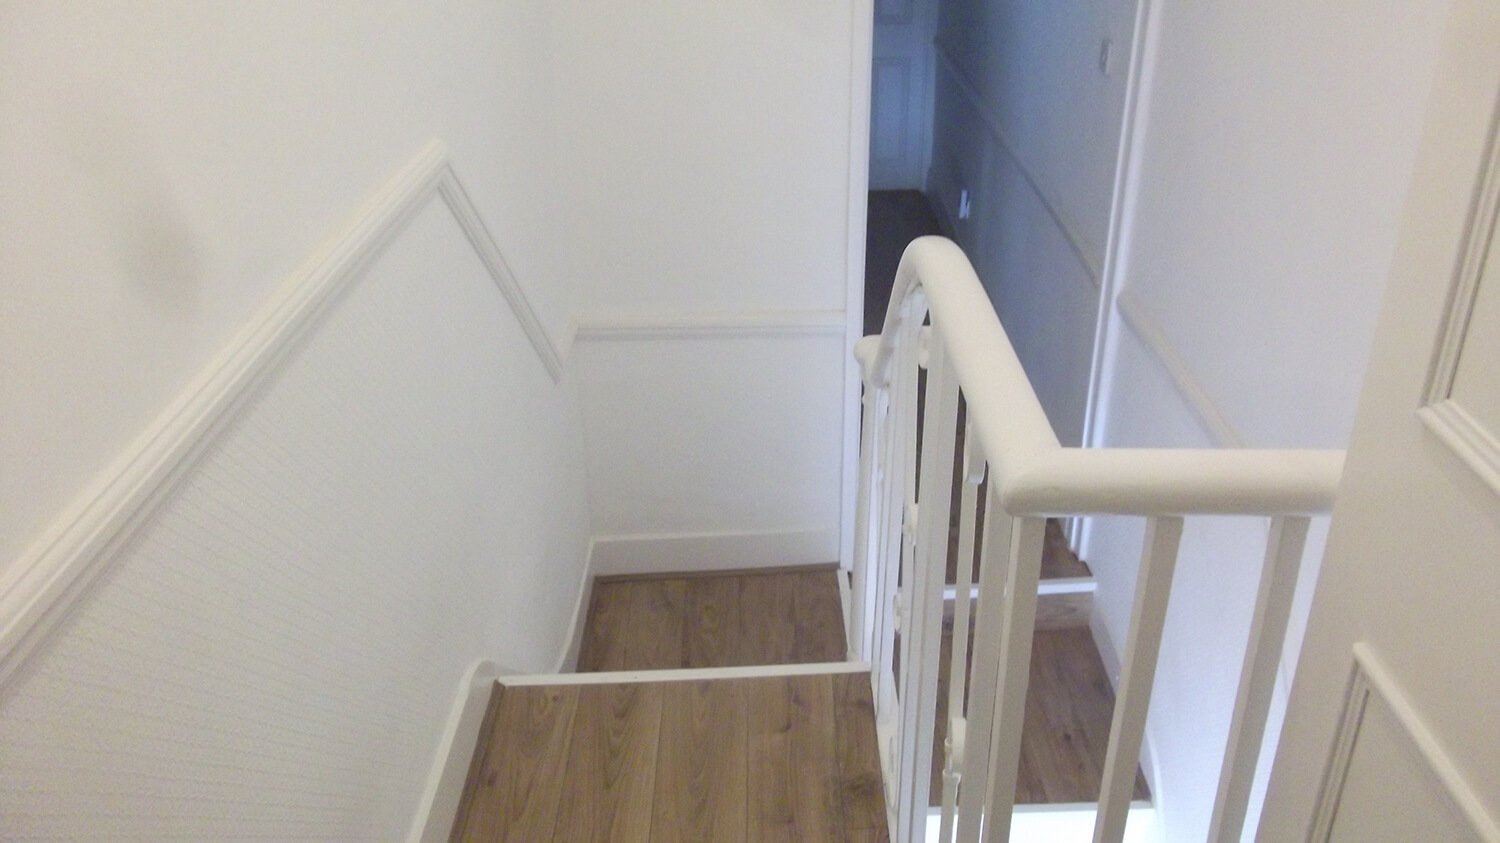 stairwell after refurbishing